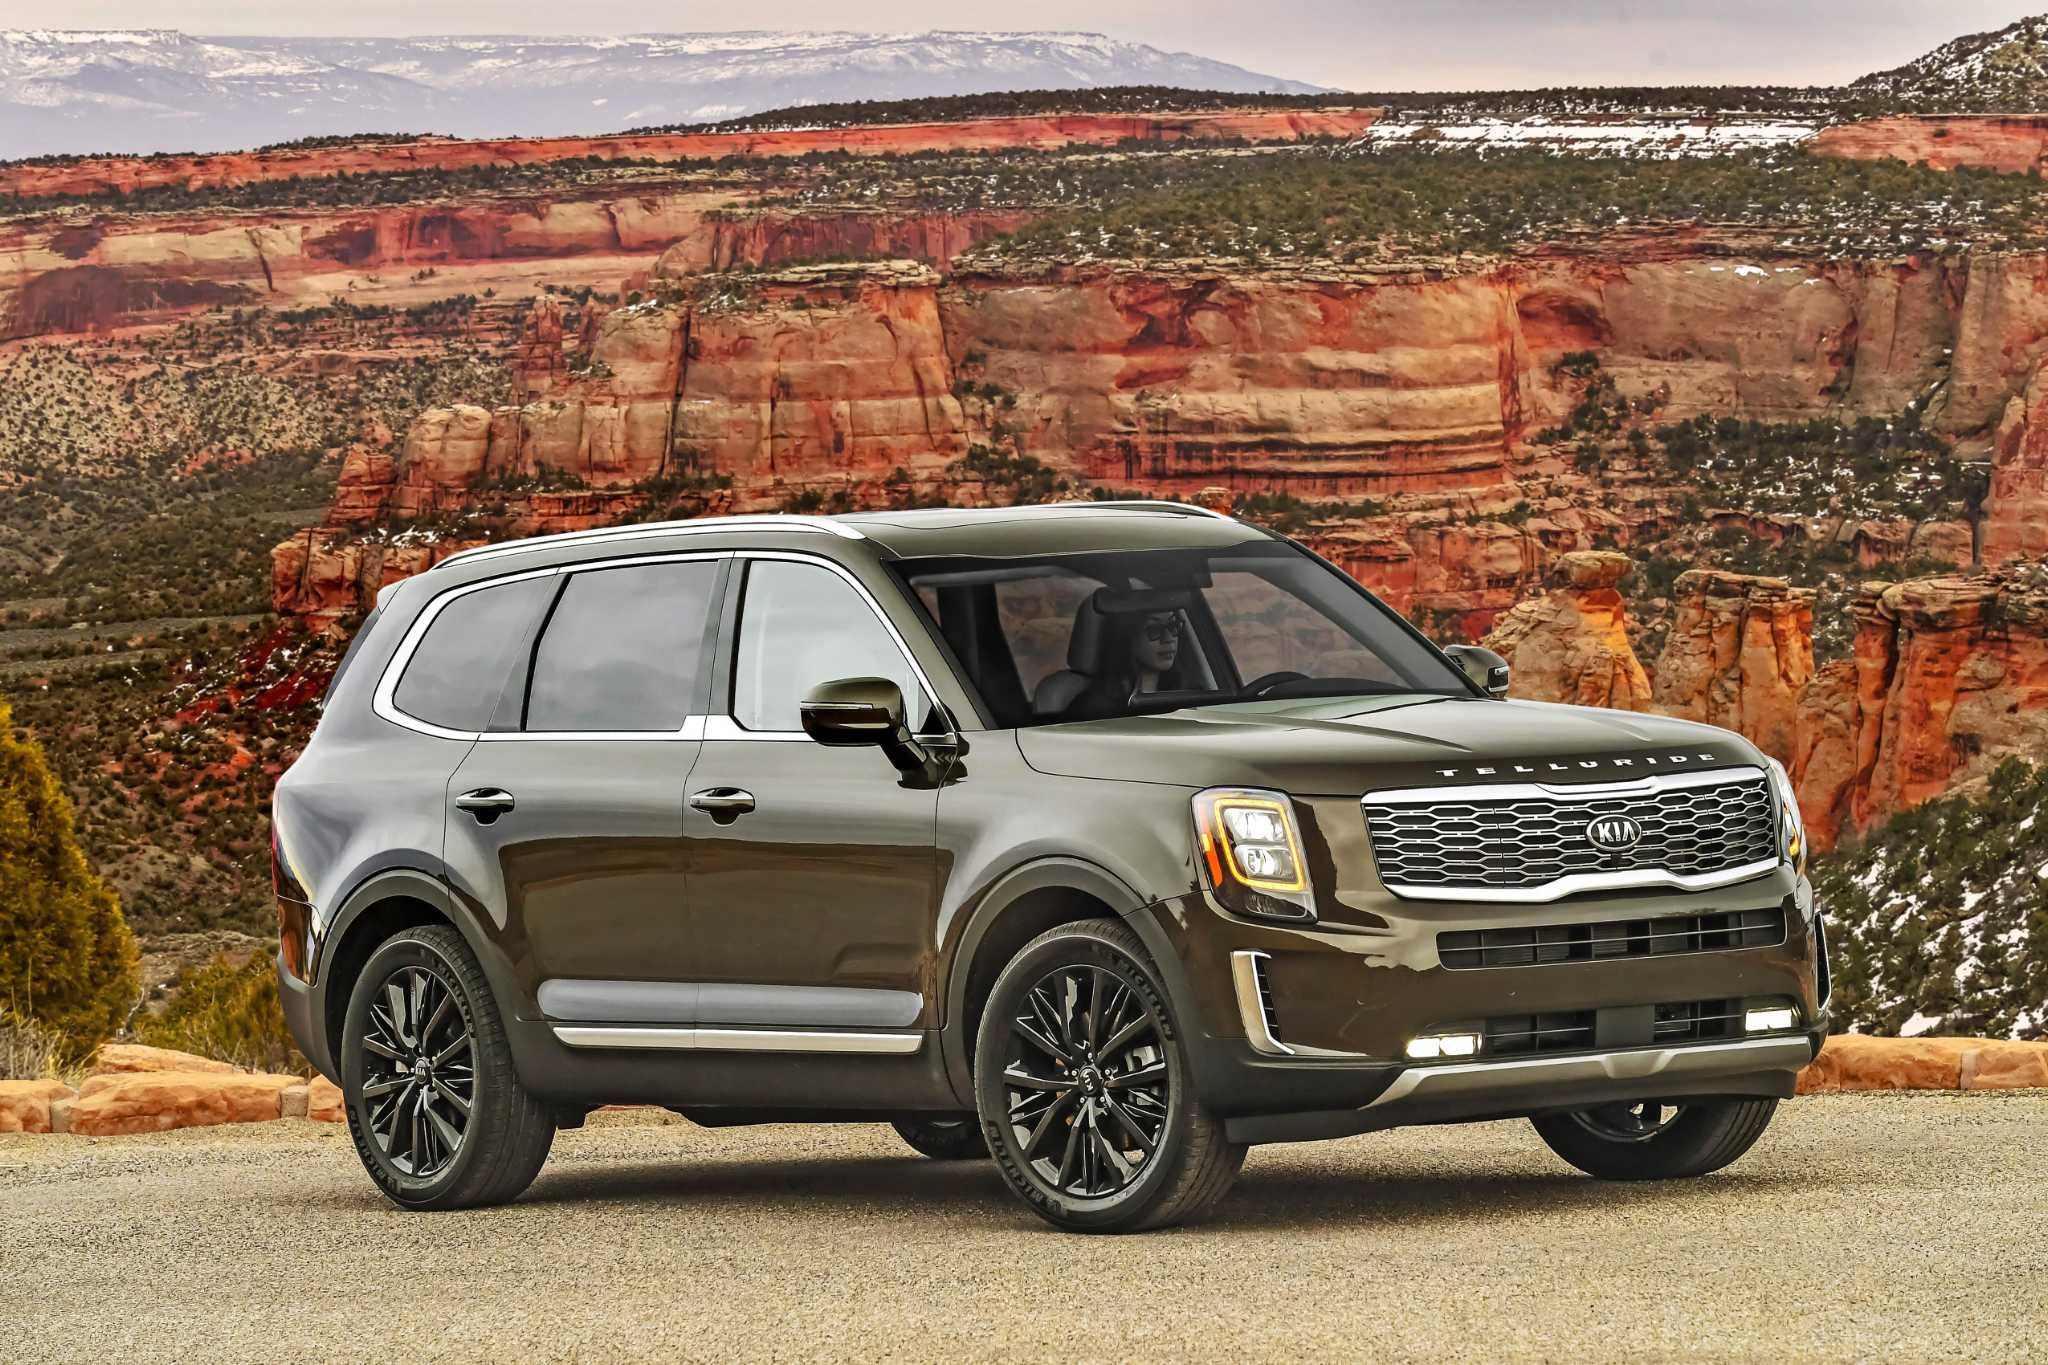 Drive: The 2021 Kia Telluride SX is an automotive techie's dream